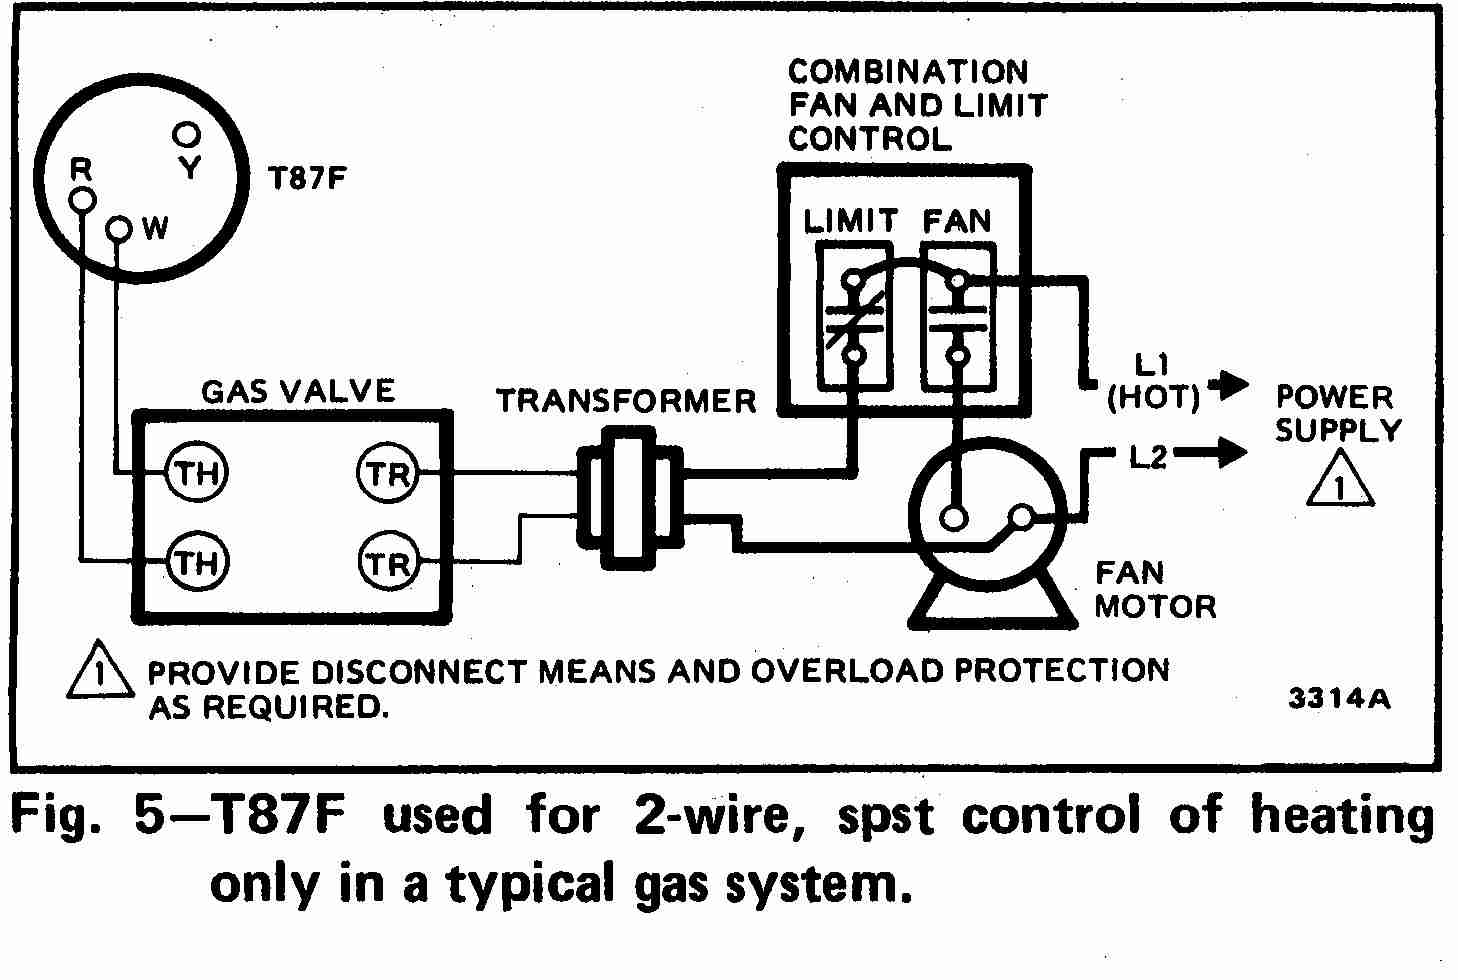 TT_T87F_0002_2Wg_DJF guide to wiring connections for room thermostats honeywell round thermostat wiring diagram at cos-gaming.co